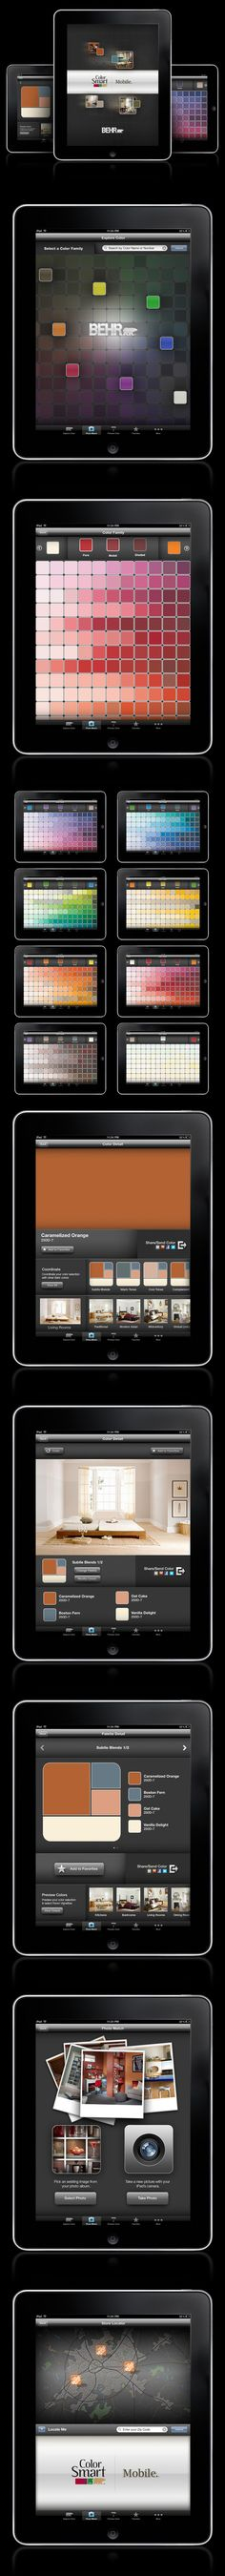 BEHR ColorSmart iPad App - Get inspired! ColorSmart by BEHR™ is now available for your iPhone® and iPad®. Designed with all of the same great features found in our online version, ColorSmart by BEHR™ Mobile is an easy and convenient way to find, coordinate or preview a BEHR® paint color for all of your paint projects.